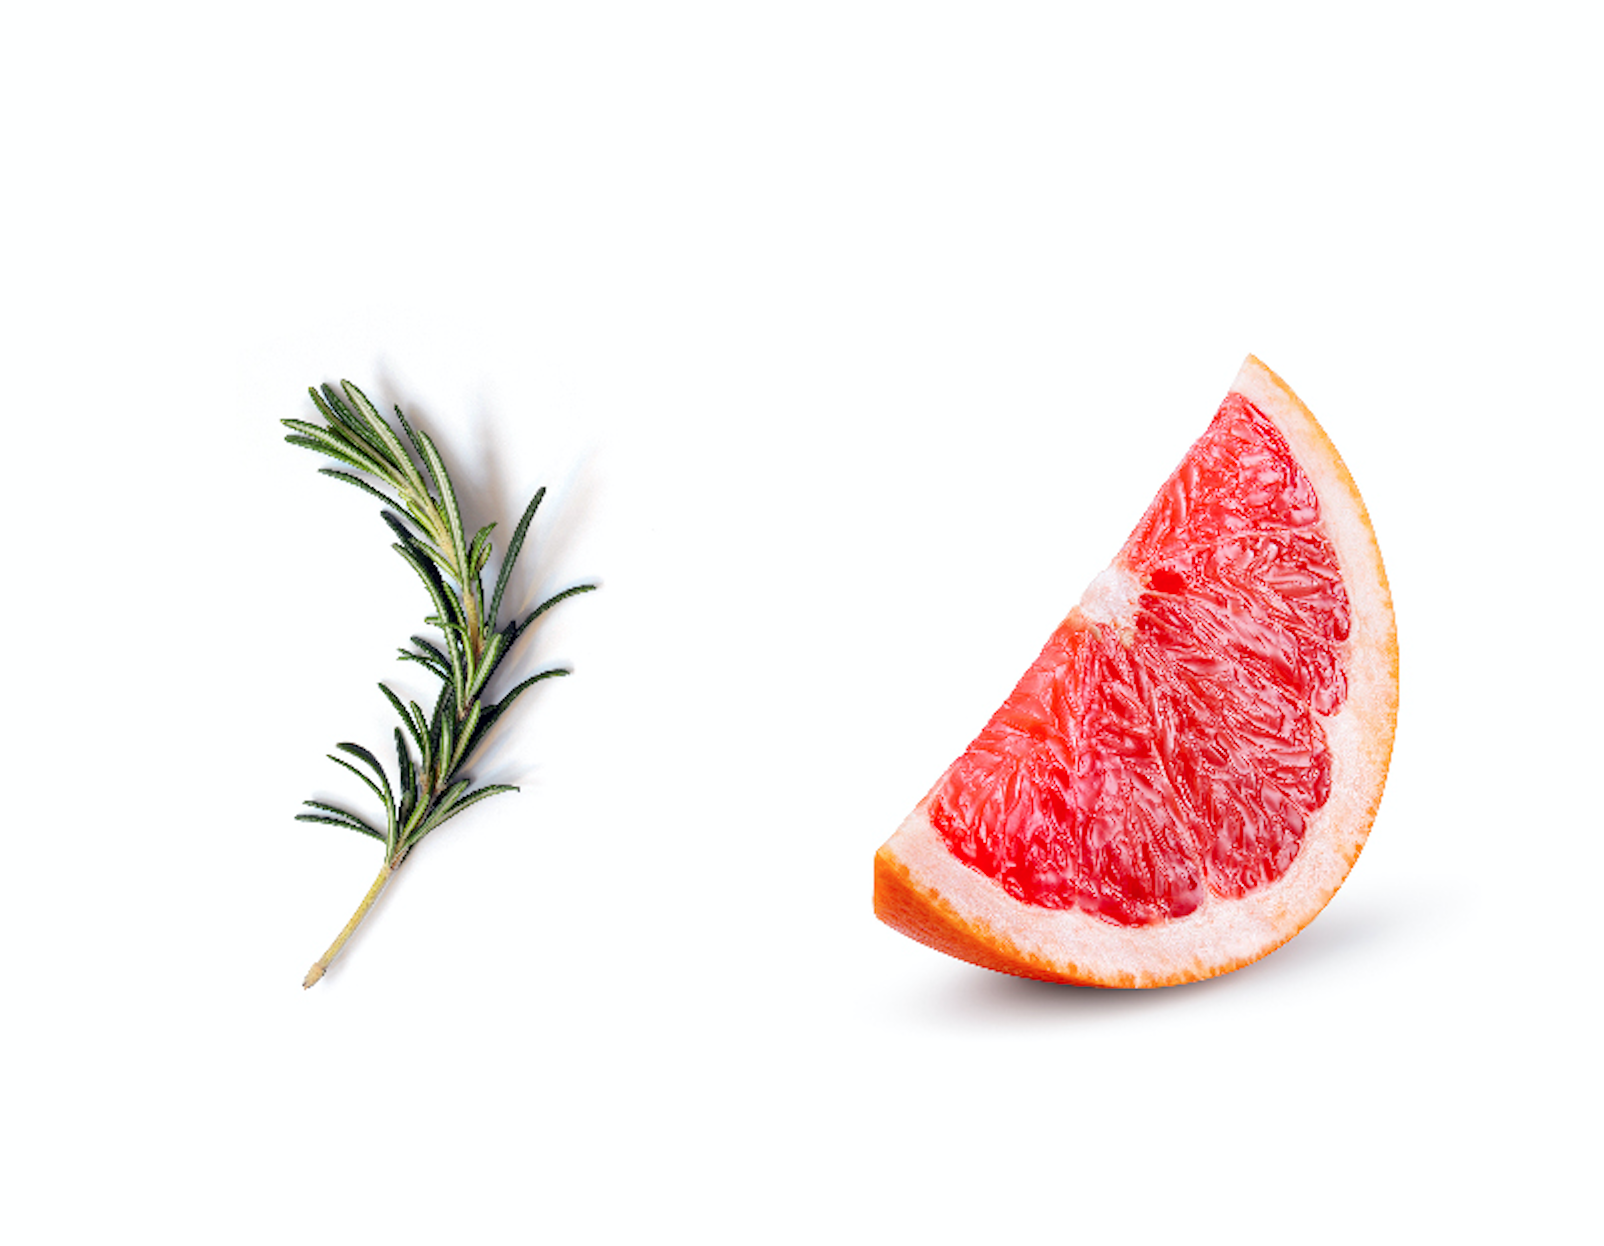 GiG Hard Seltzer Rosemary Grapefruit